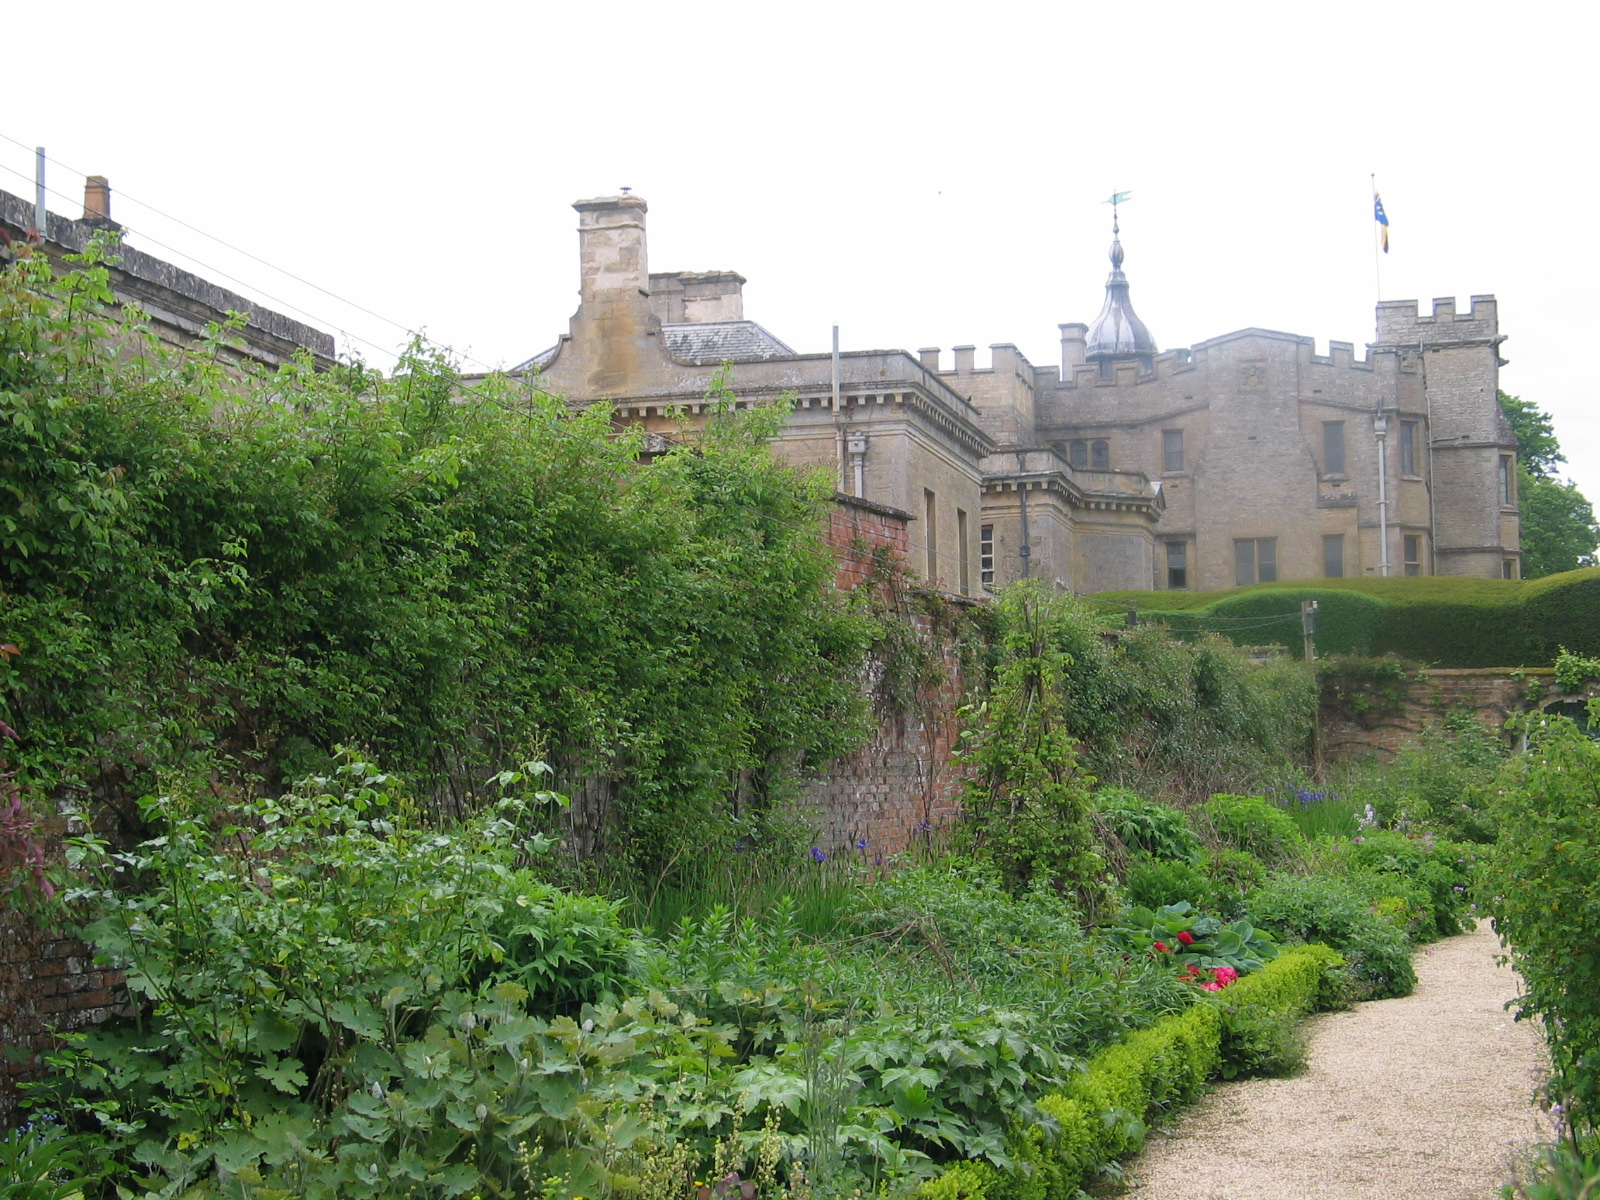 Rousahm Walled Garden